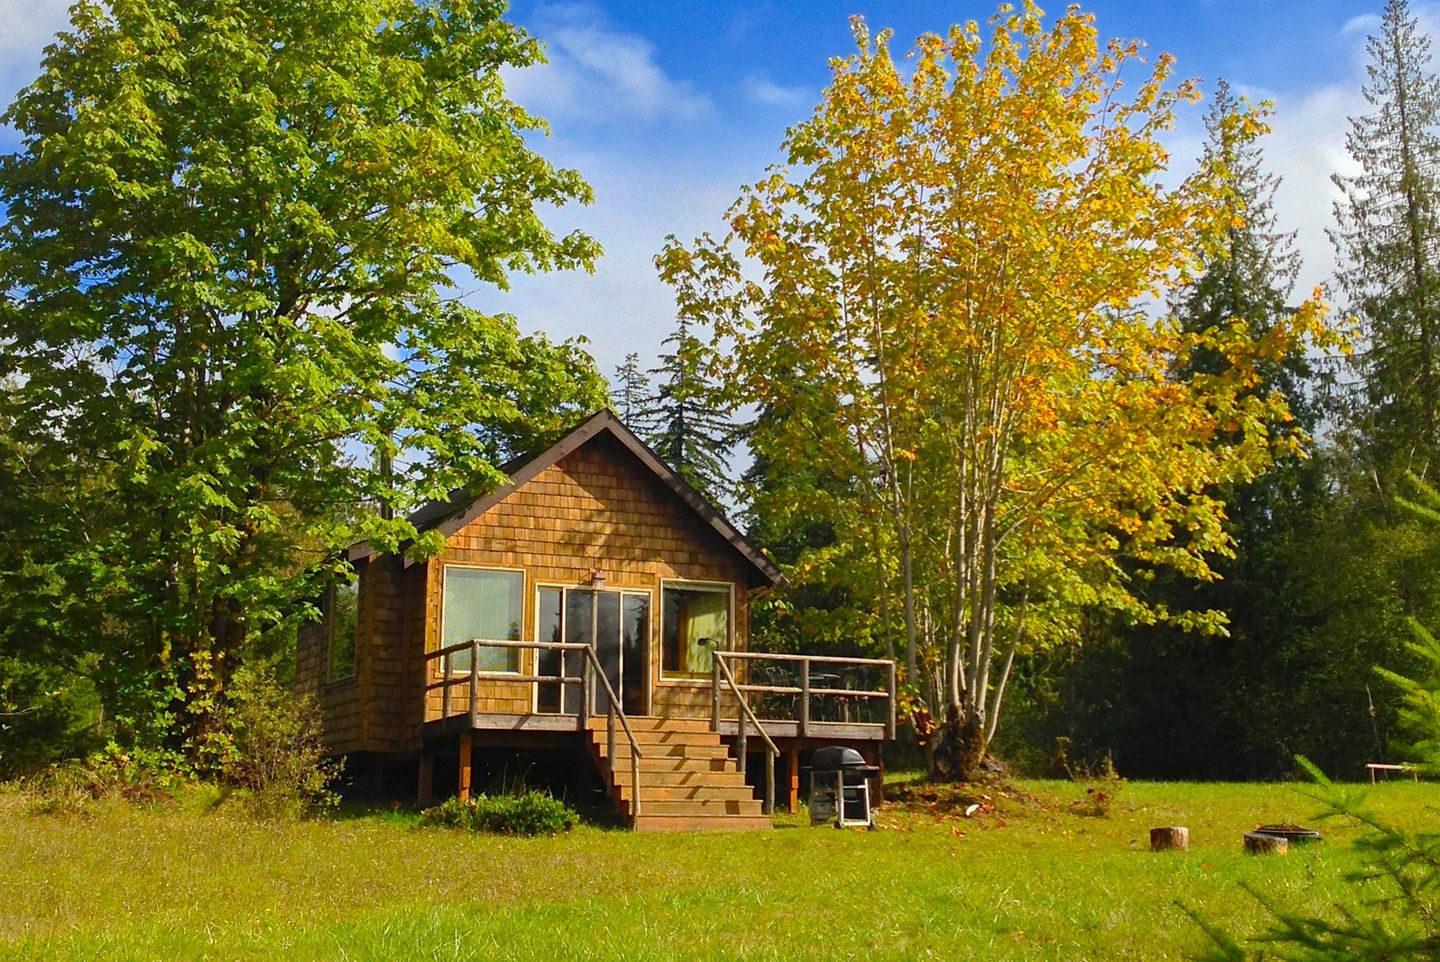 Attirant The Pond Cottage, An Idyllic Retreat Surrounded By Nature | Small House  Bliss